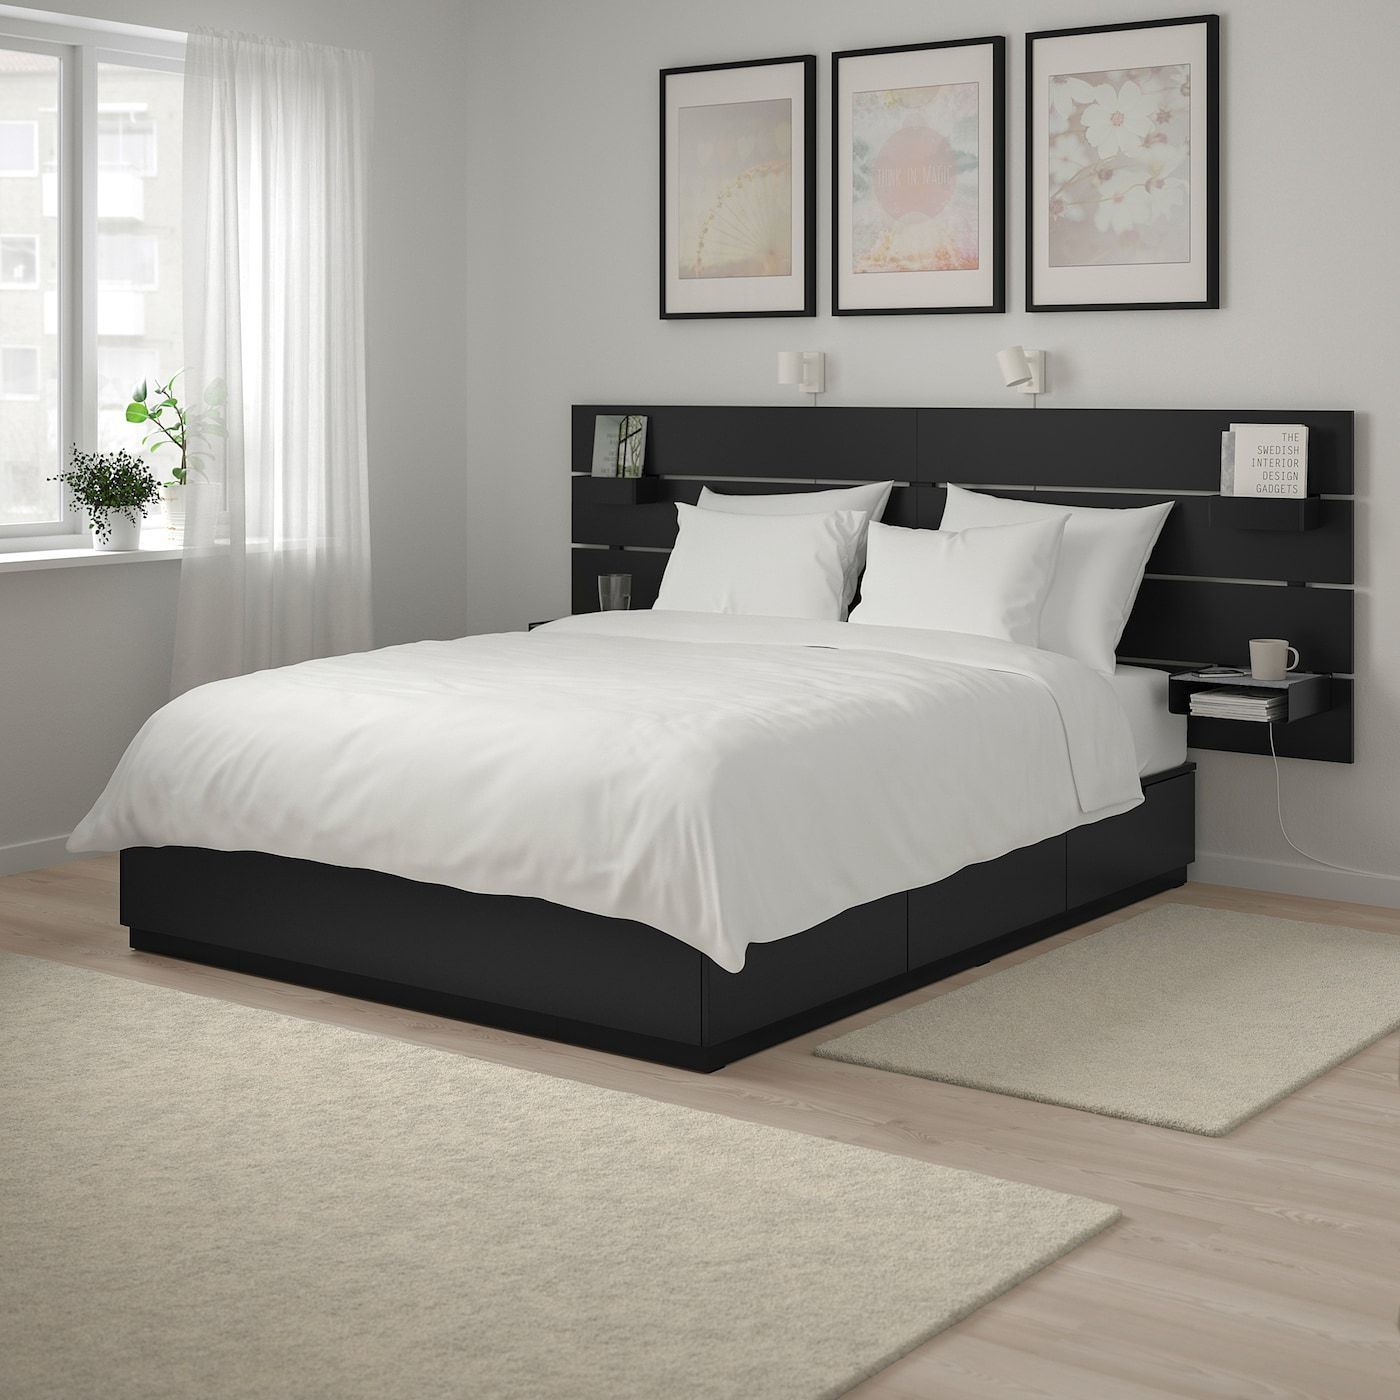 Ikea Nordli Bed With Headboard And Storage Anthracite In 2020